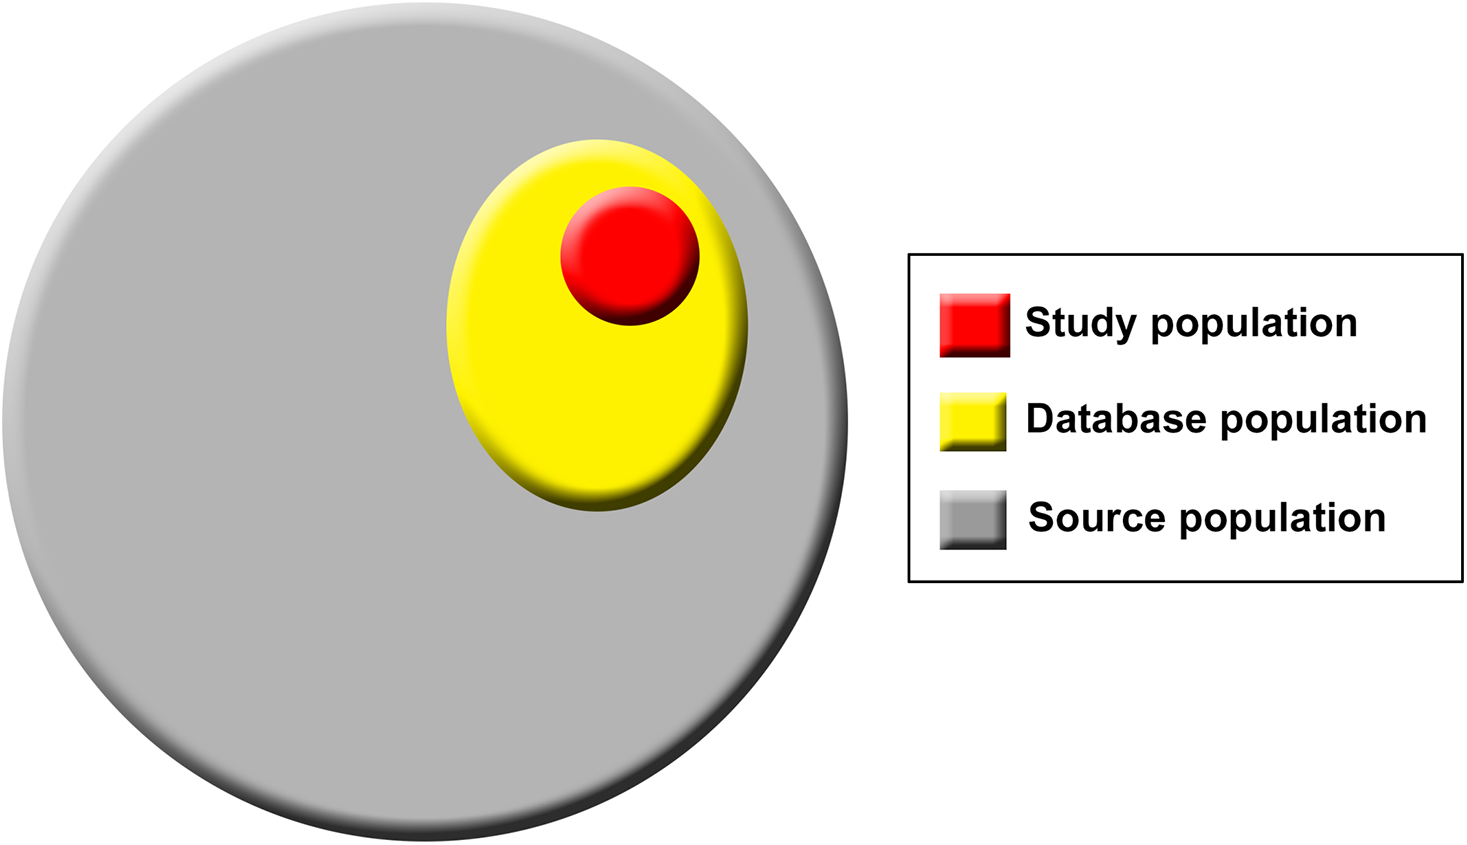 Population hierarchy in studies using routinely collected data sources.